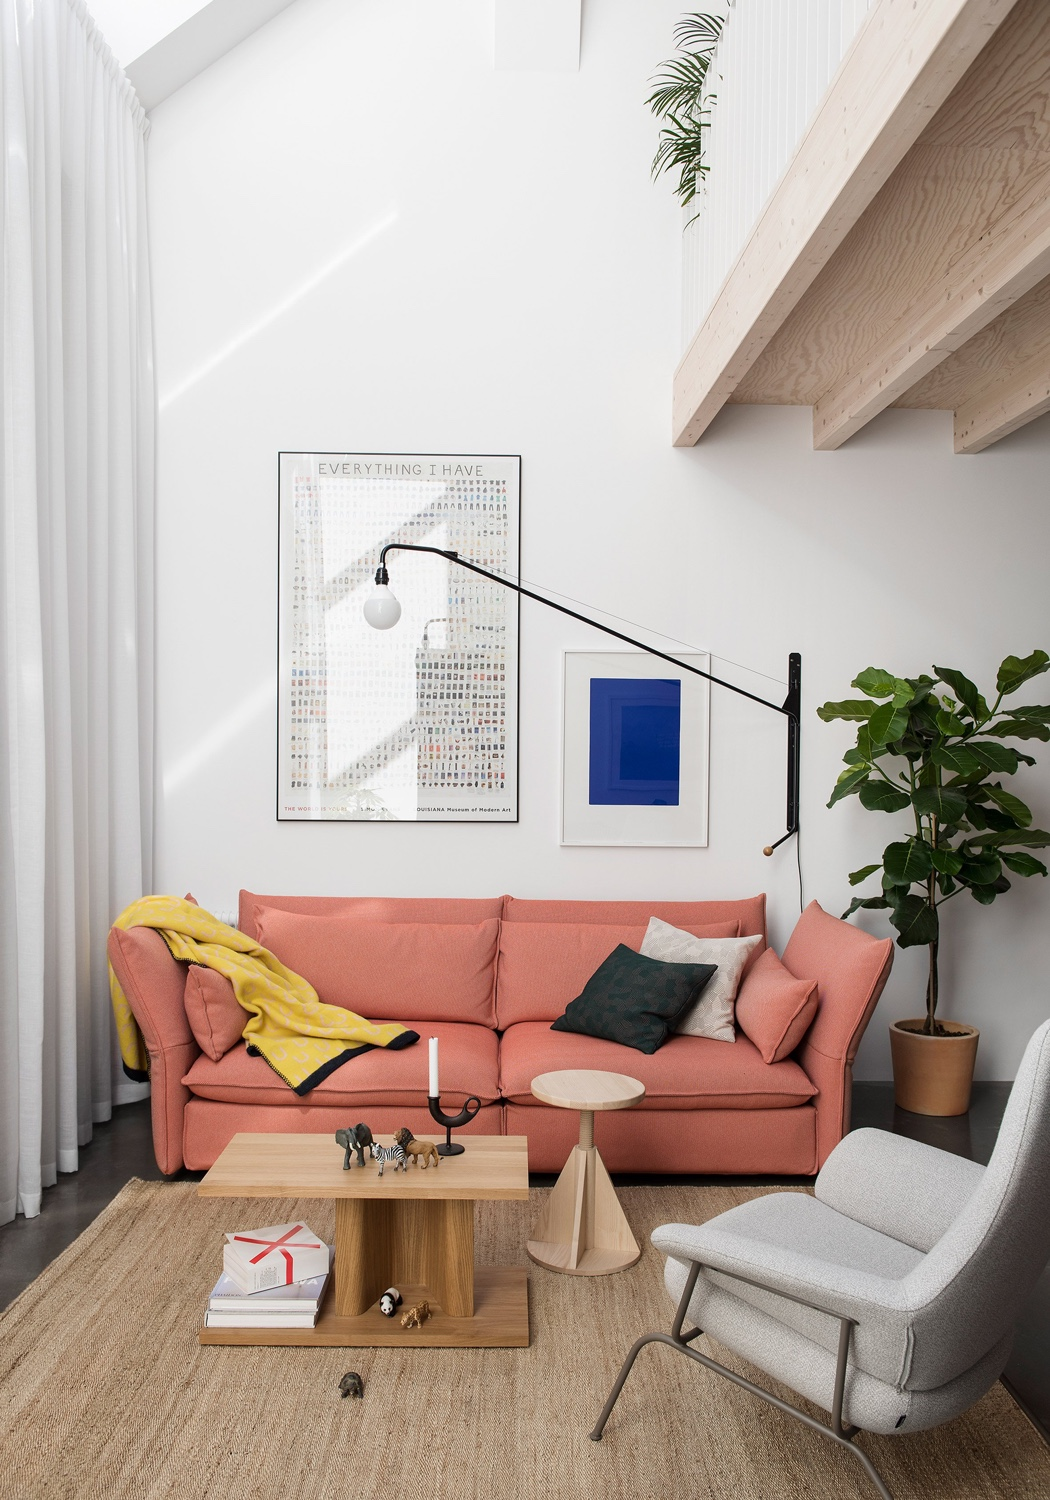 Find Your Hyggehjørne: A Cosy Corner